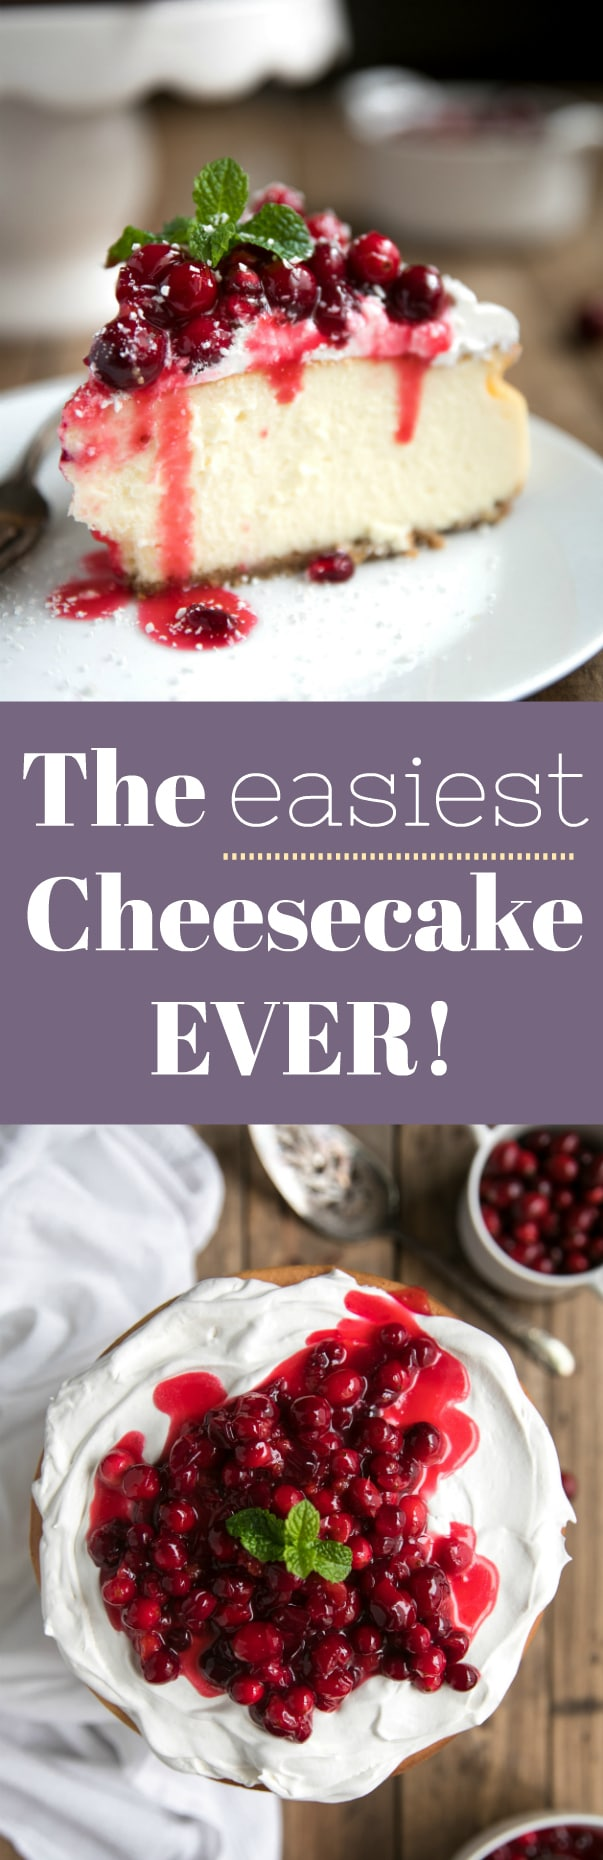 Easy Cranberry White Chocolate Cheesecake with Homemade Cranberry Pomegranate Sauce and Whipped Cream via @theforkedspoon #cheesecake #cake #dessert #cranberrysauce #whitechocolate #whippedcream